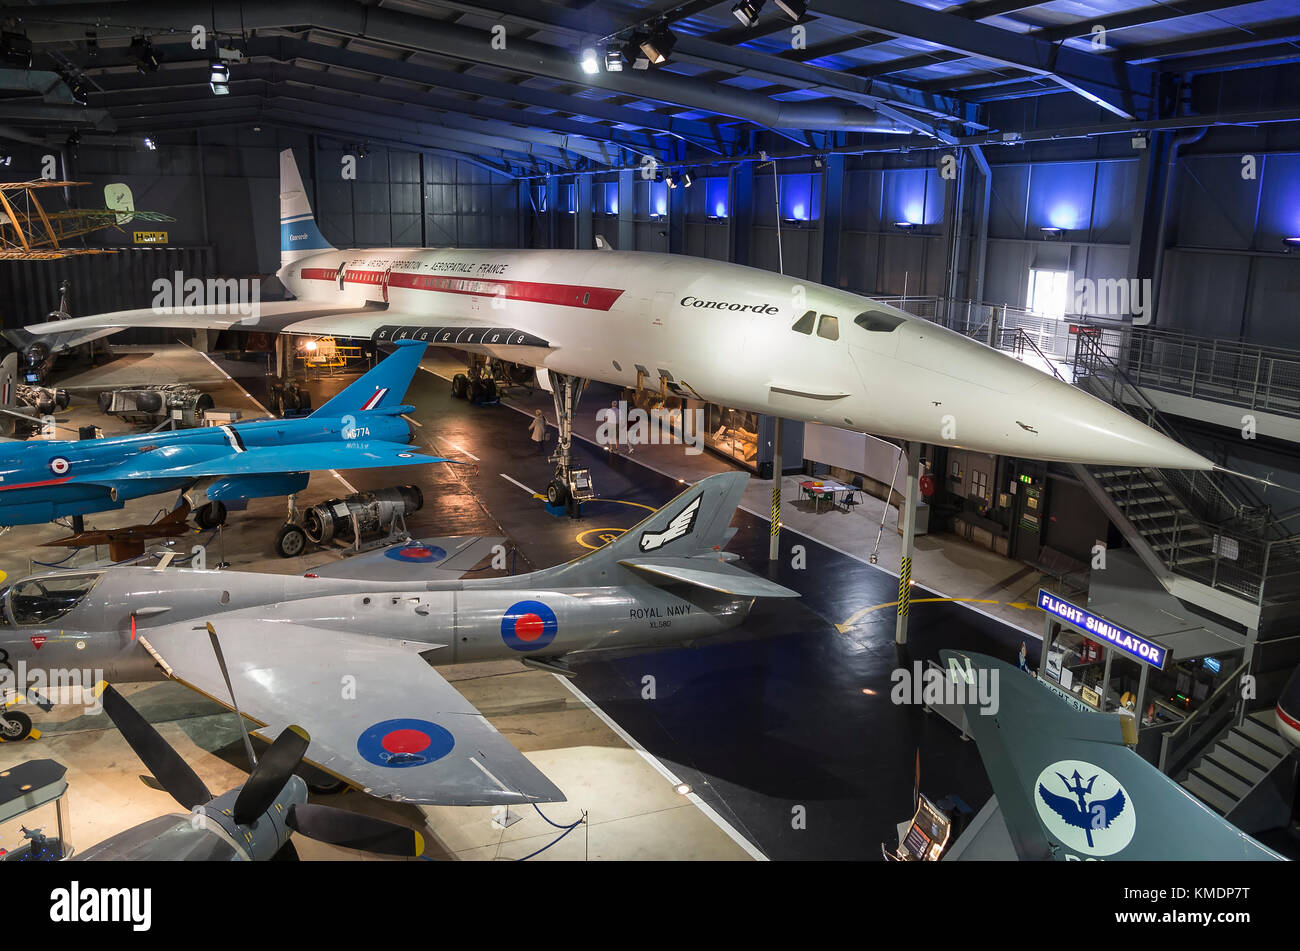 A general aeiral view inside the Aerospace hangar at the IWM museum at Duxford Cambridgeshire England UK showing - Stock Image